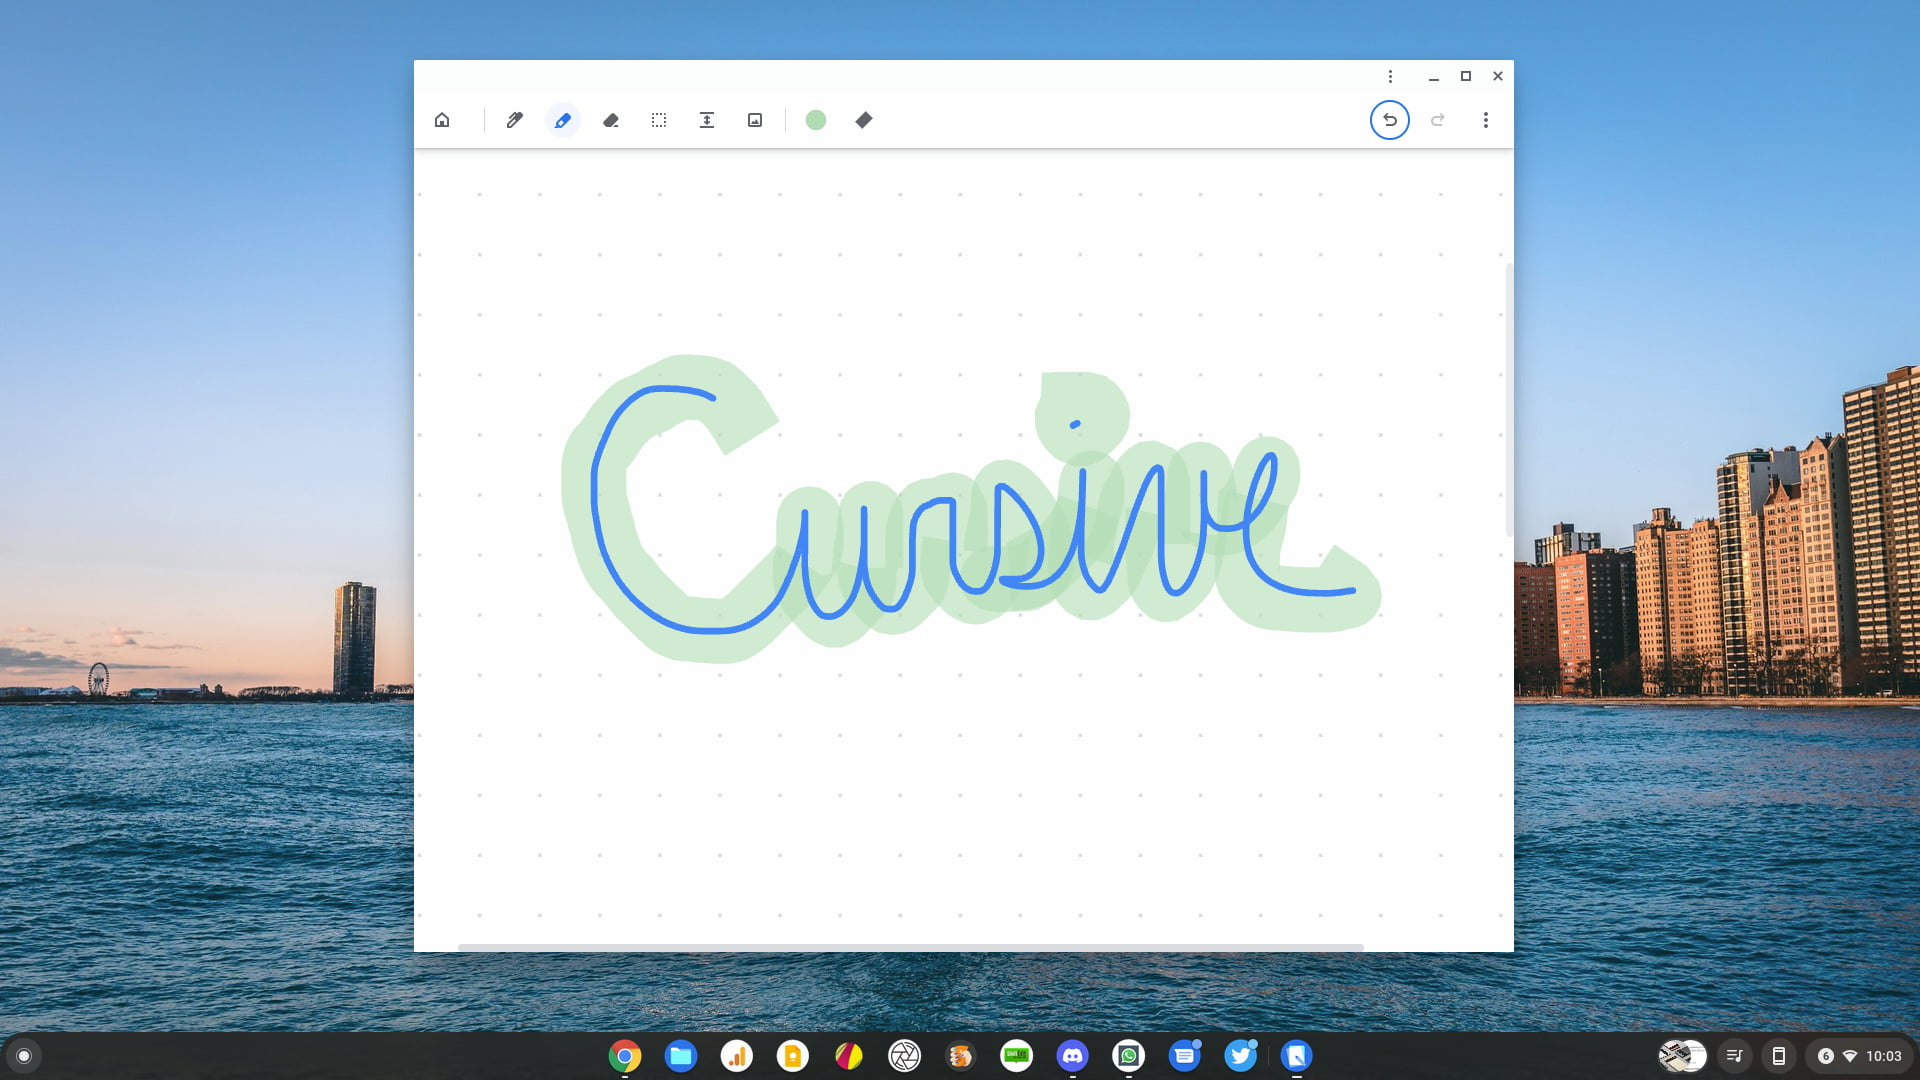 Here's how you can install Cursive – Google's new note taking app – right now